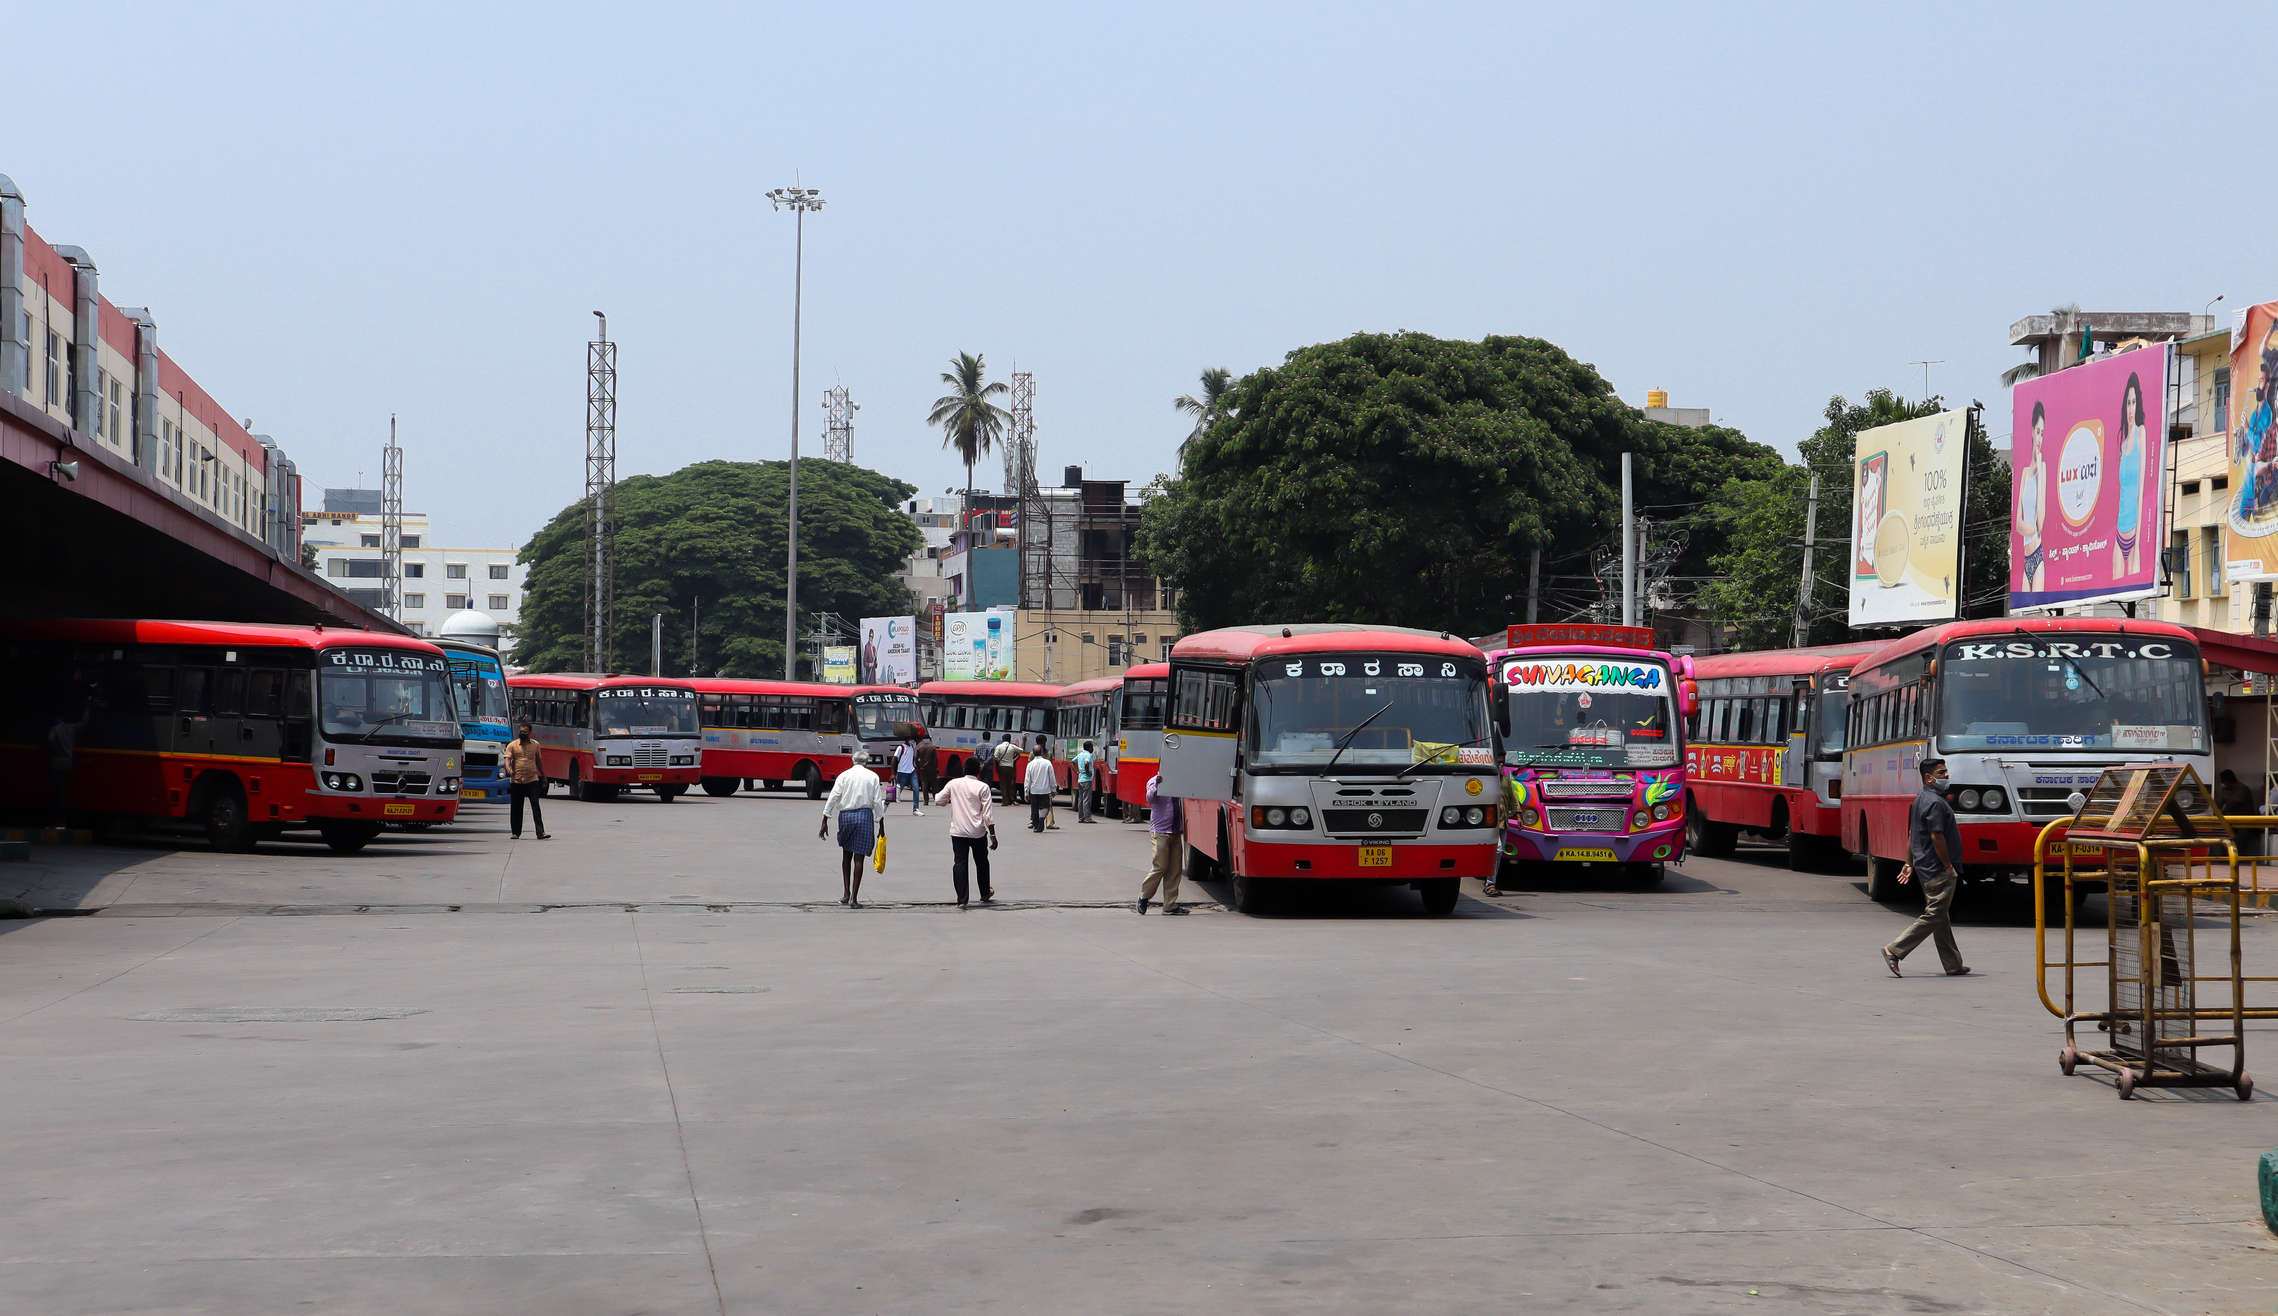 State Transport body converts buses into mobile COVID vaccination centers in Karnataka